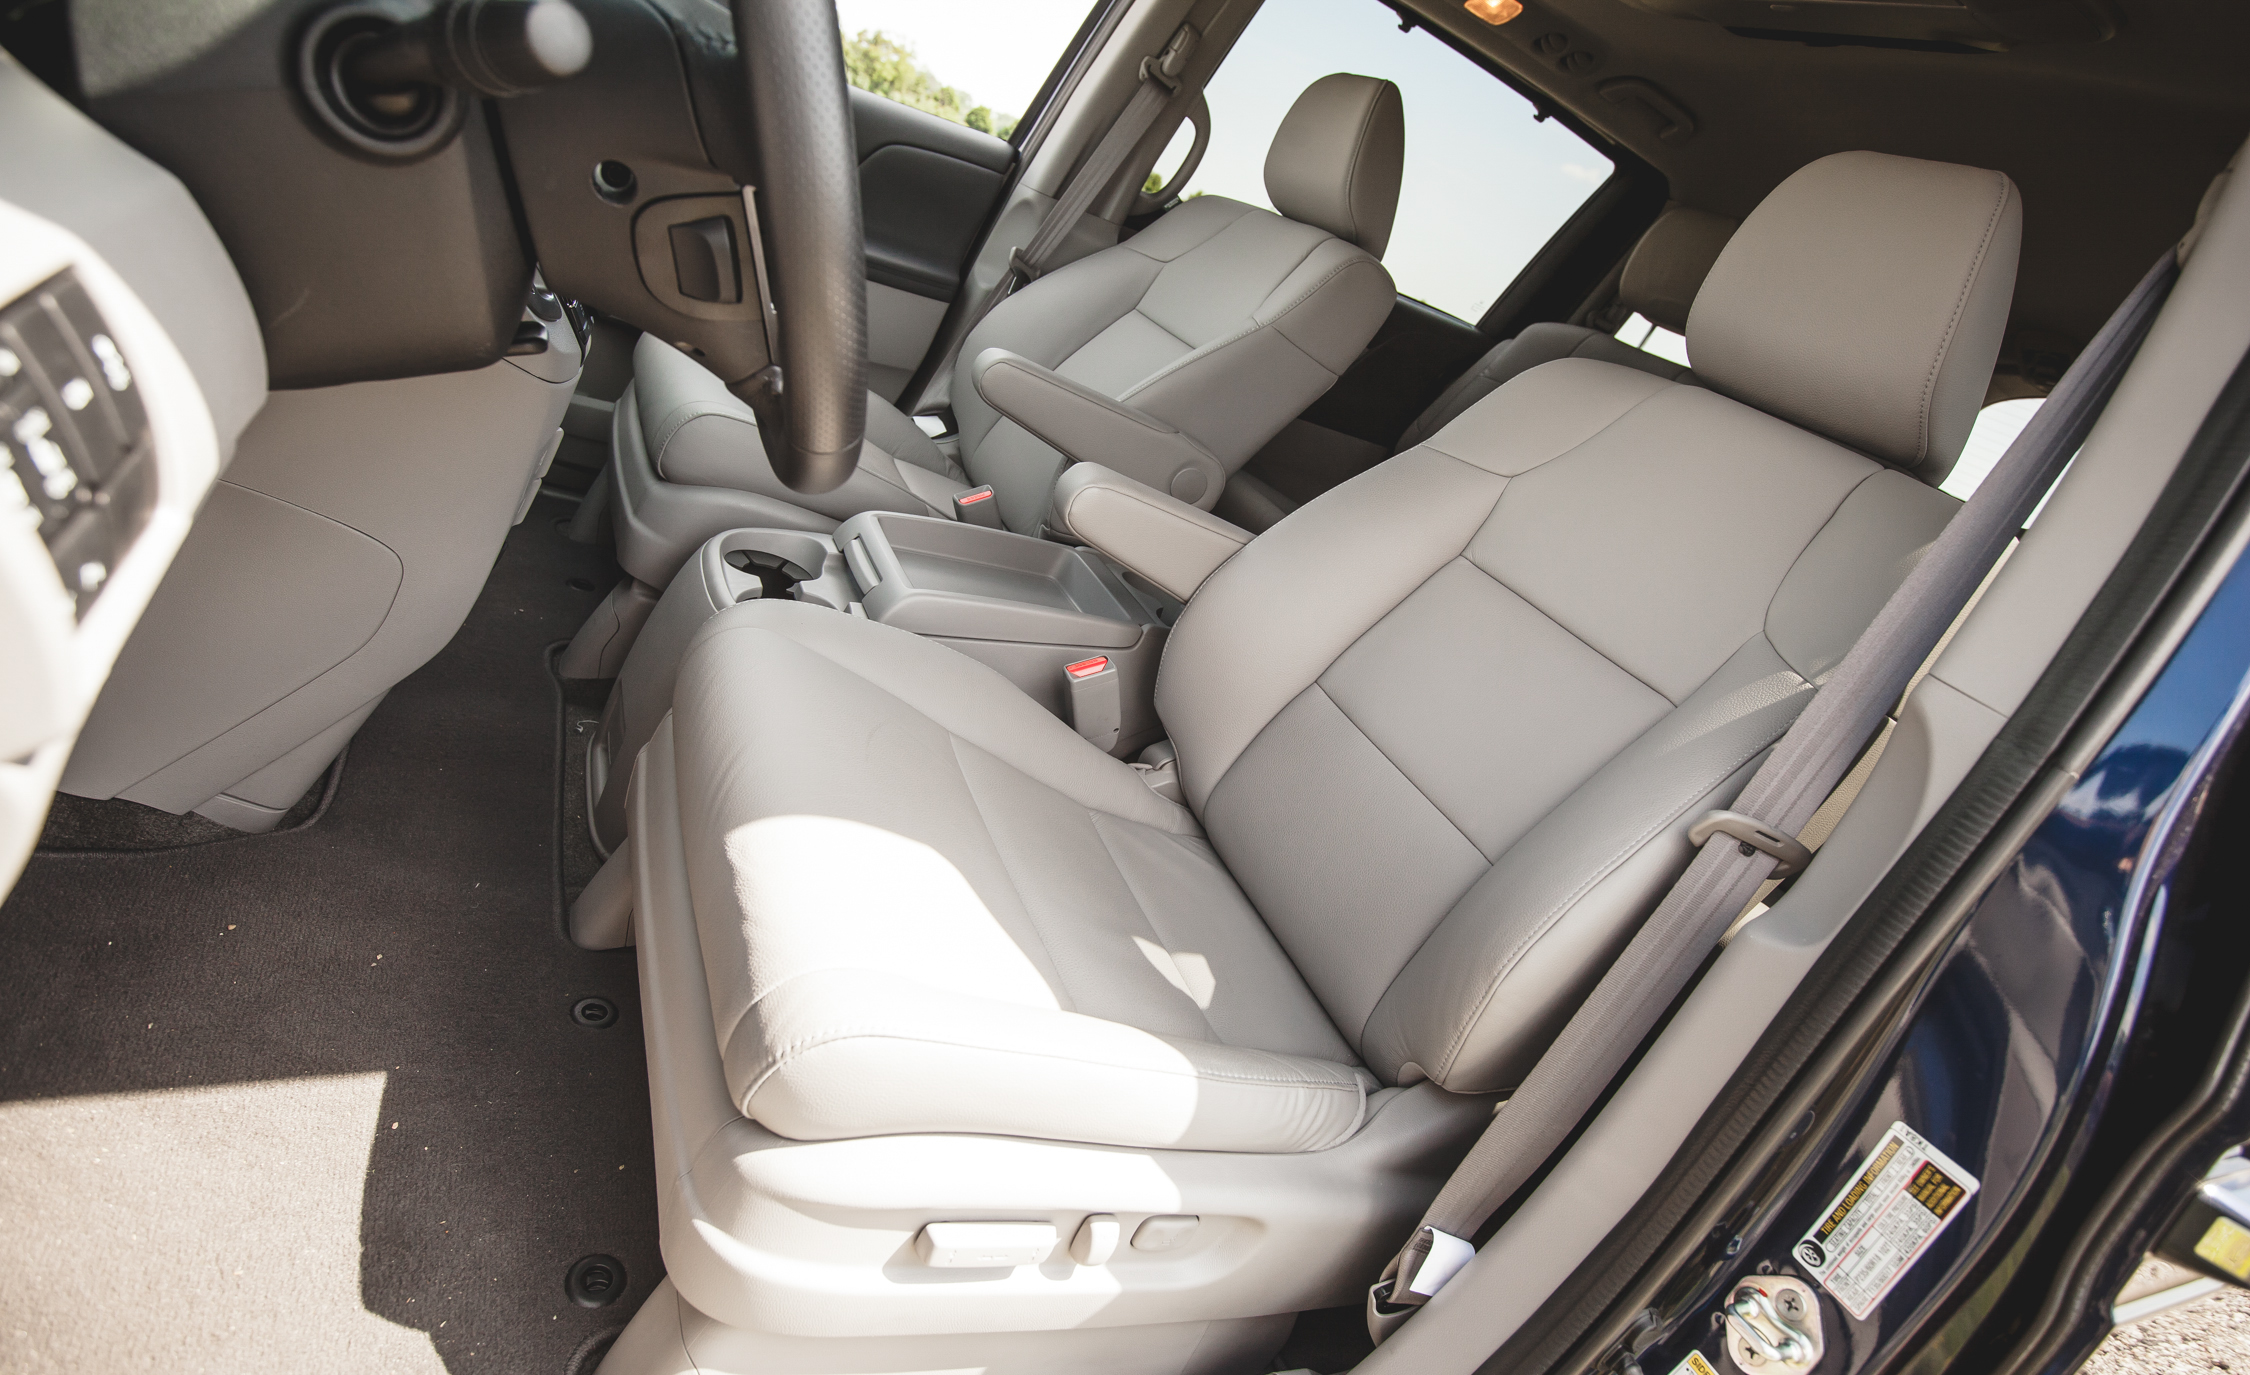 2014 Honda Odyssey Touring Elite Interior (Photo 17 of 19)